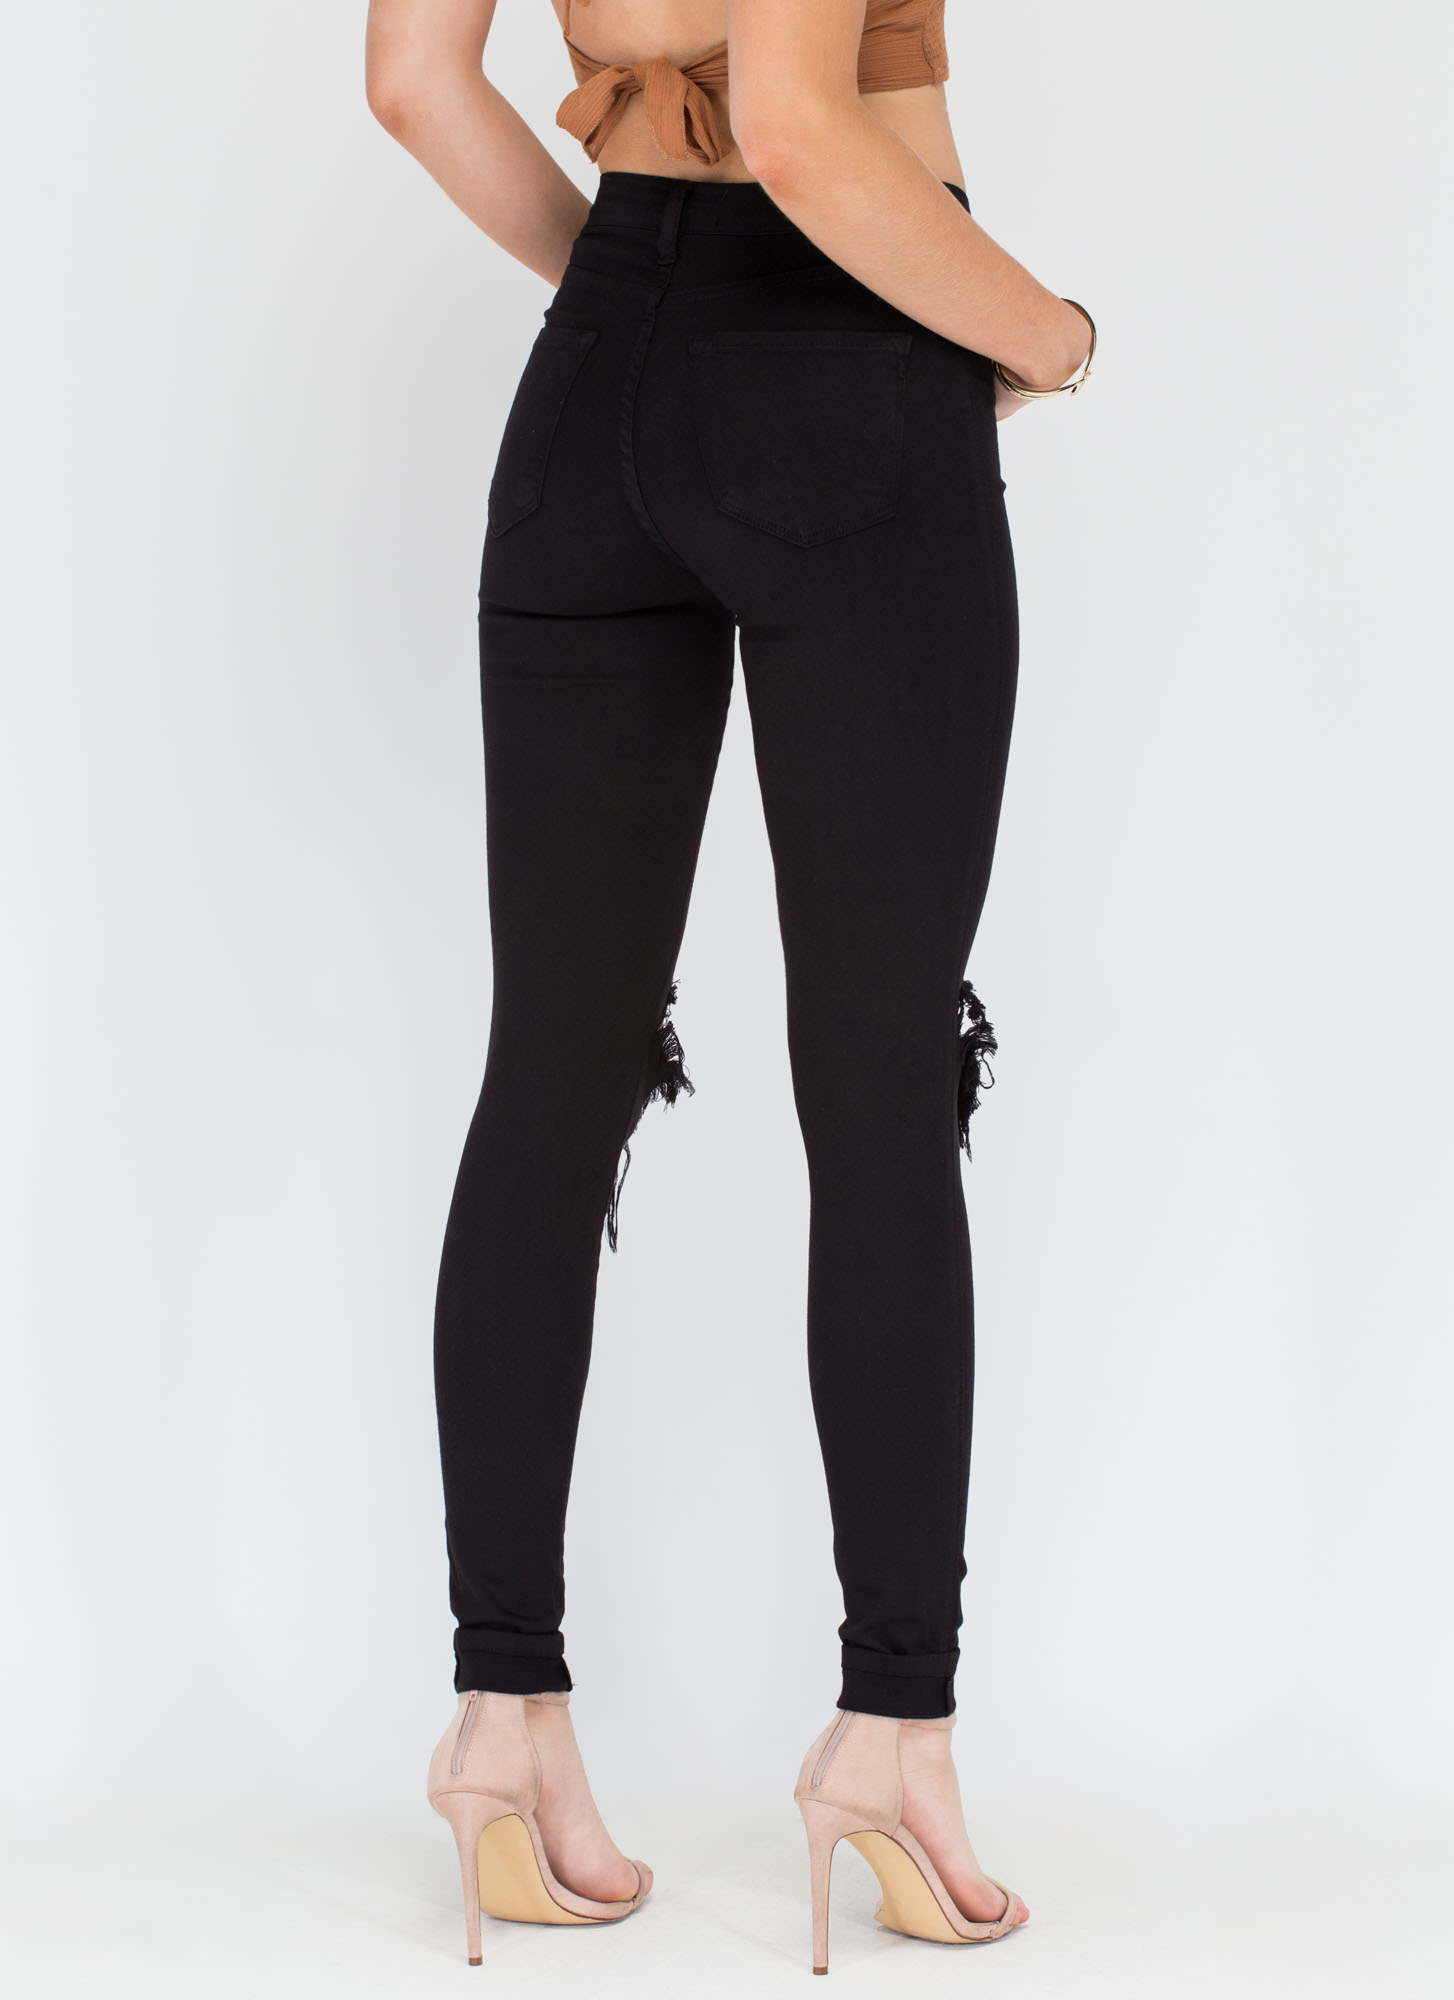 Make The Cut-Out Distressed Skinny Jeans BLACK